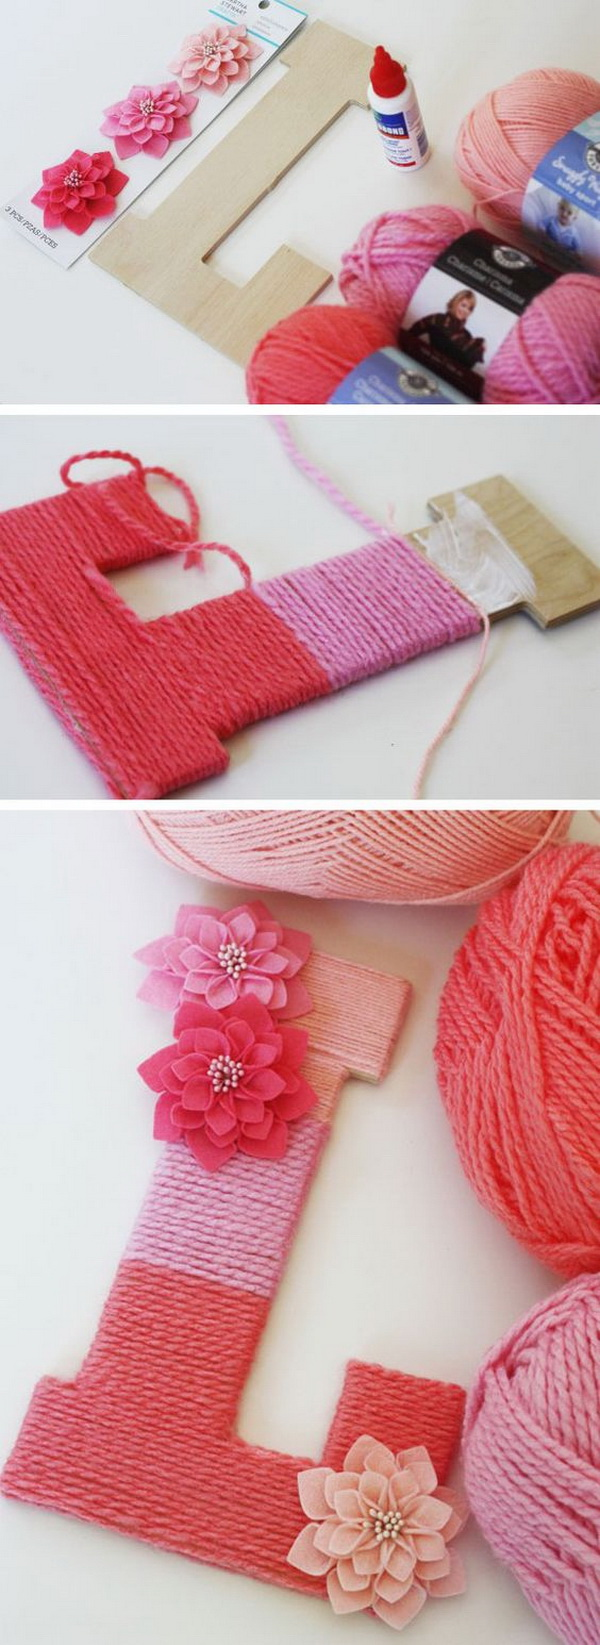 DIY Yarn Wrapped Ombre Monogram Letter: Make a decorative letter with leftover yarns. Would be a cute sign for your teen daughter's bedroom!